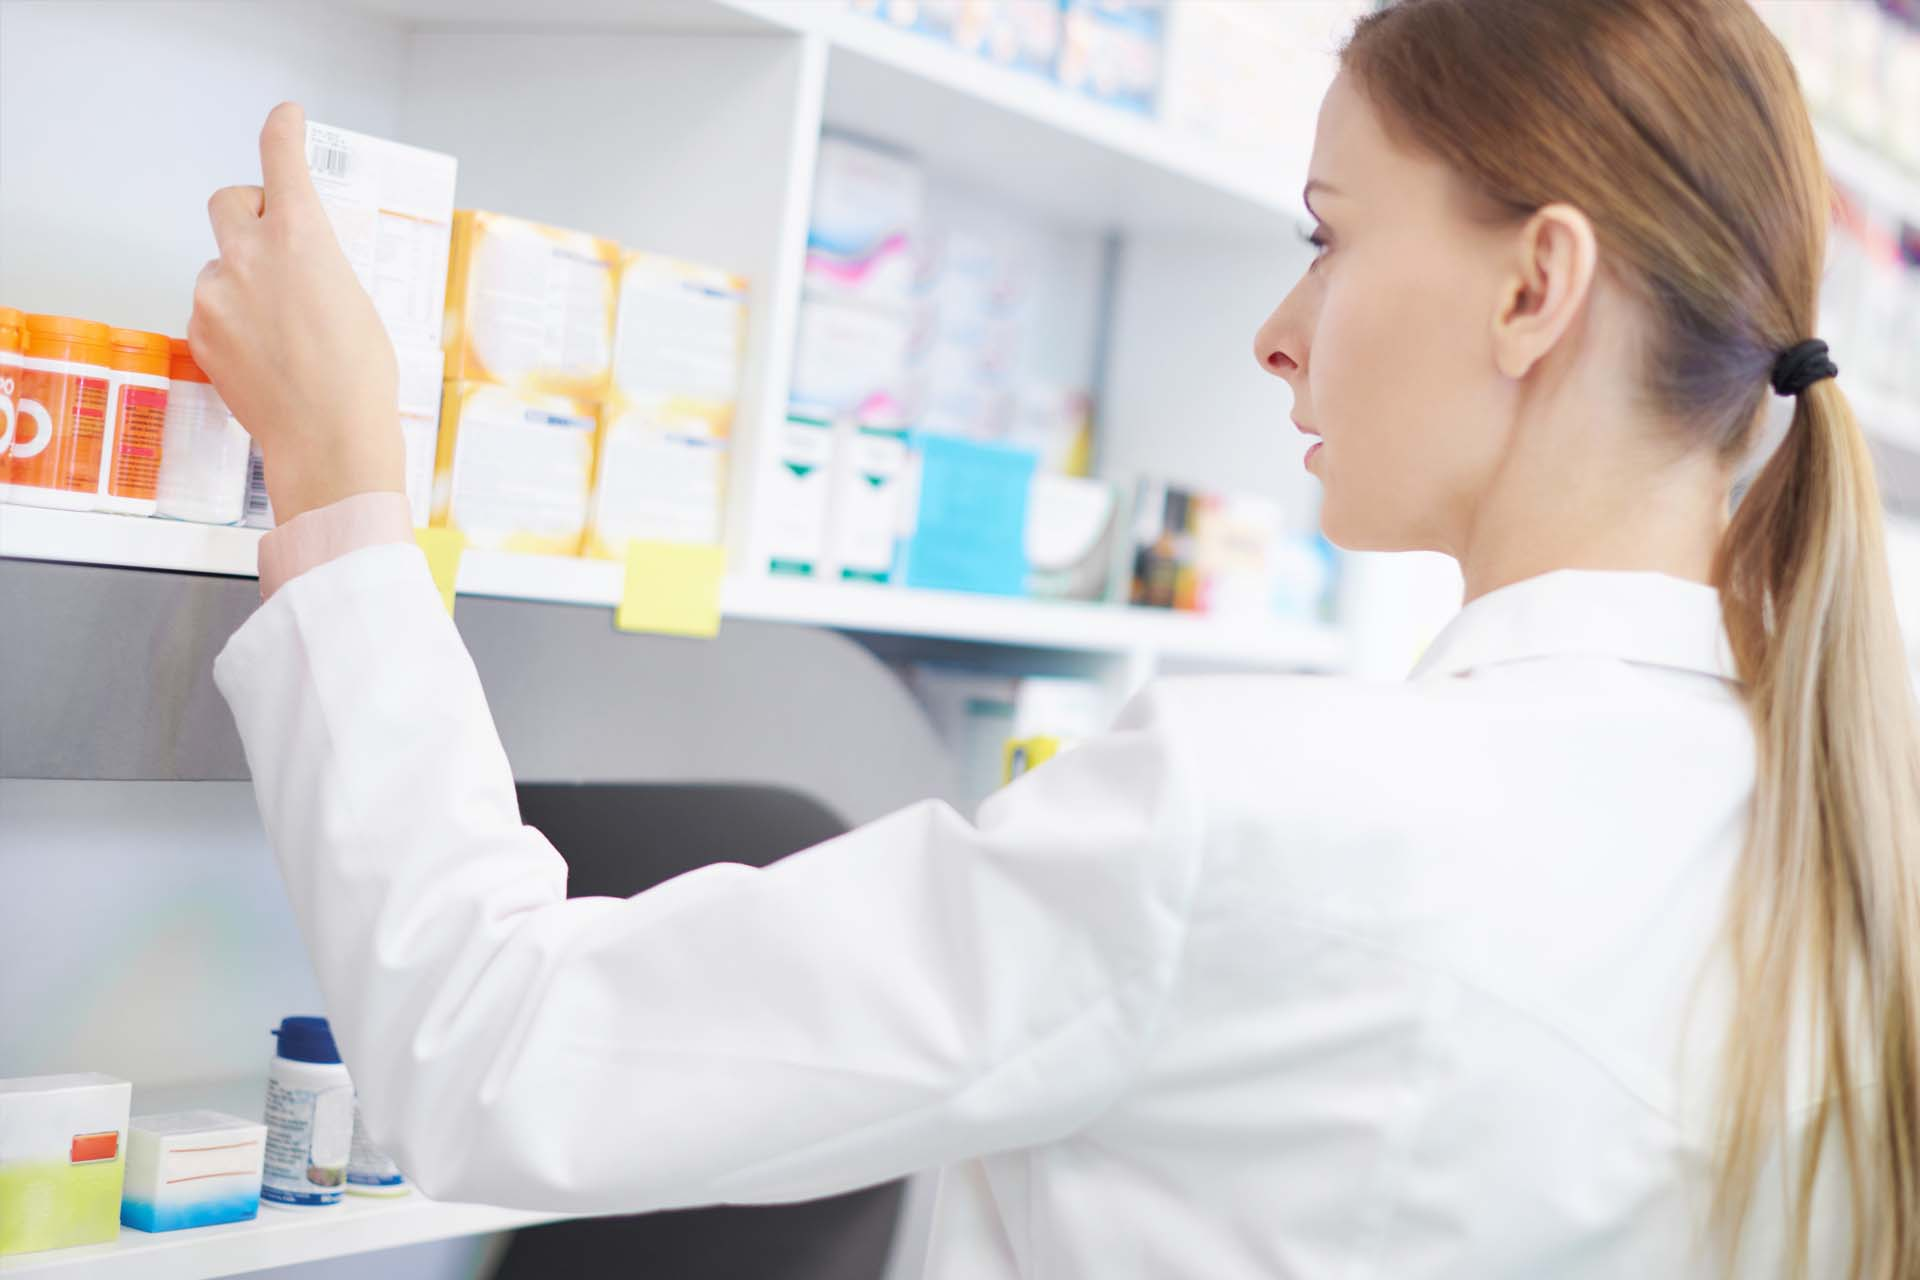 pharmacist examining medication in pharmacy